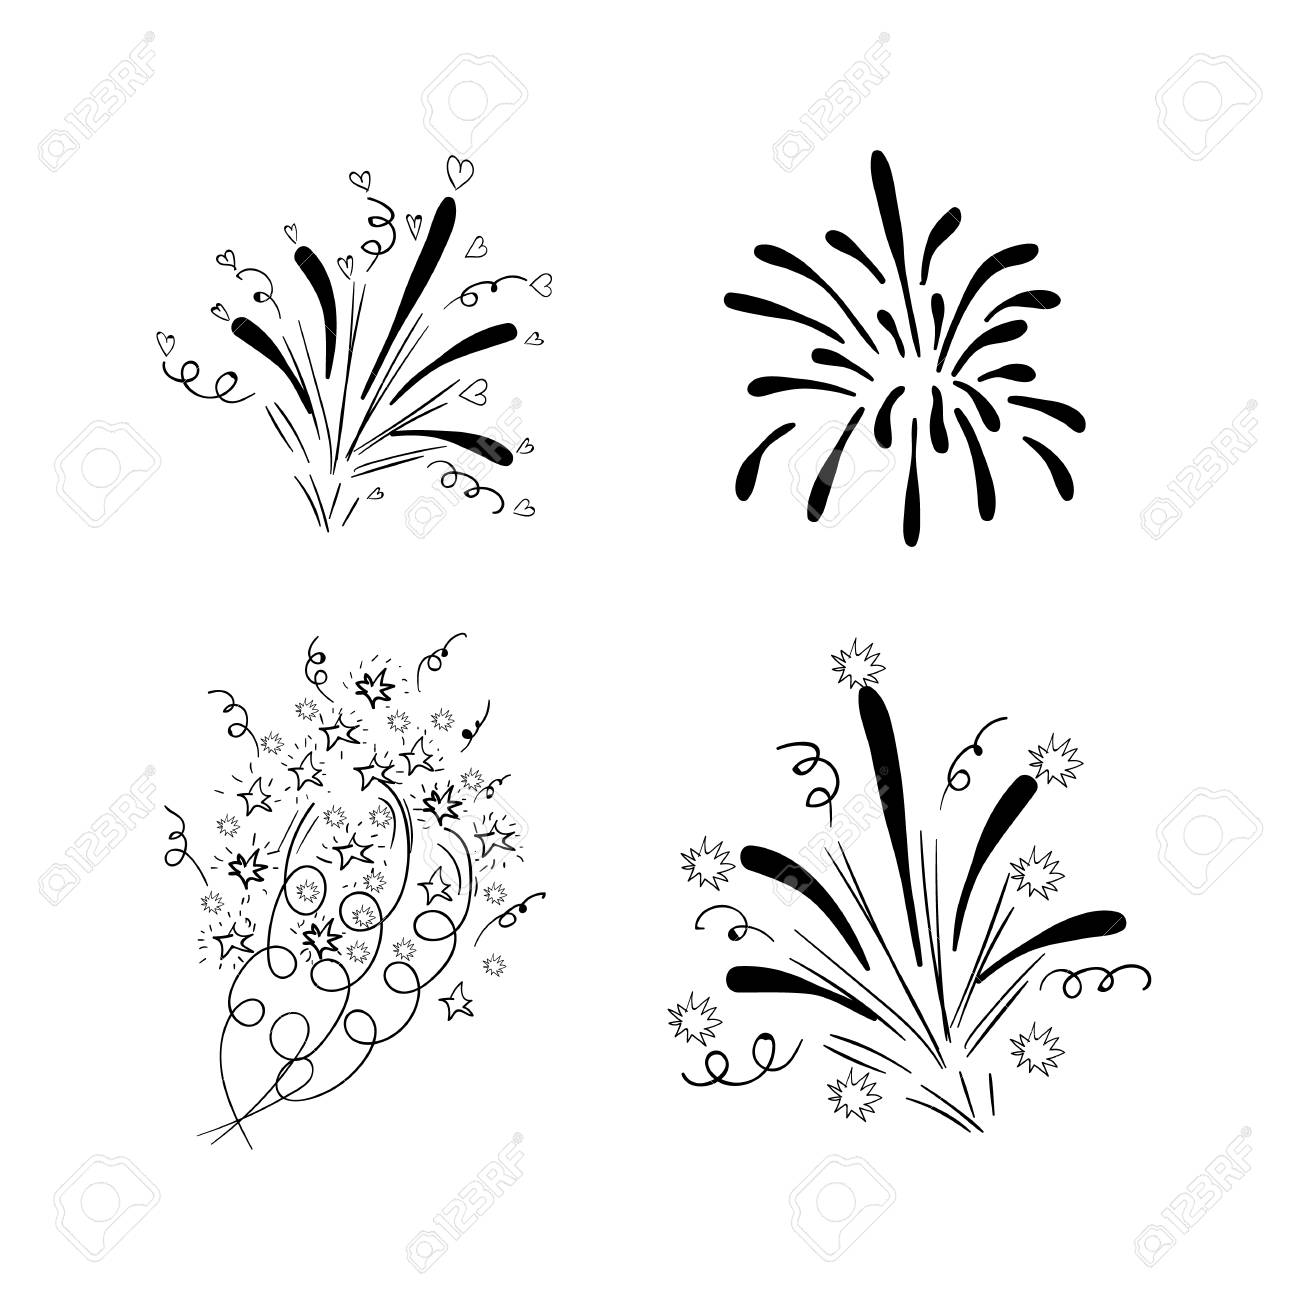 a vector drawn firework explosions black drawings isolated on white background birthday wedding new